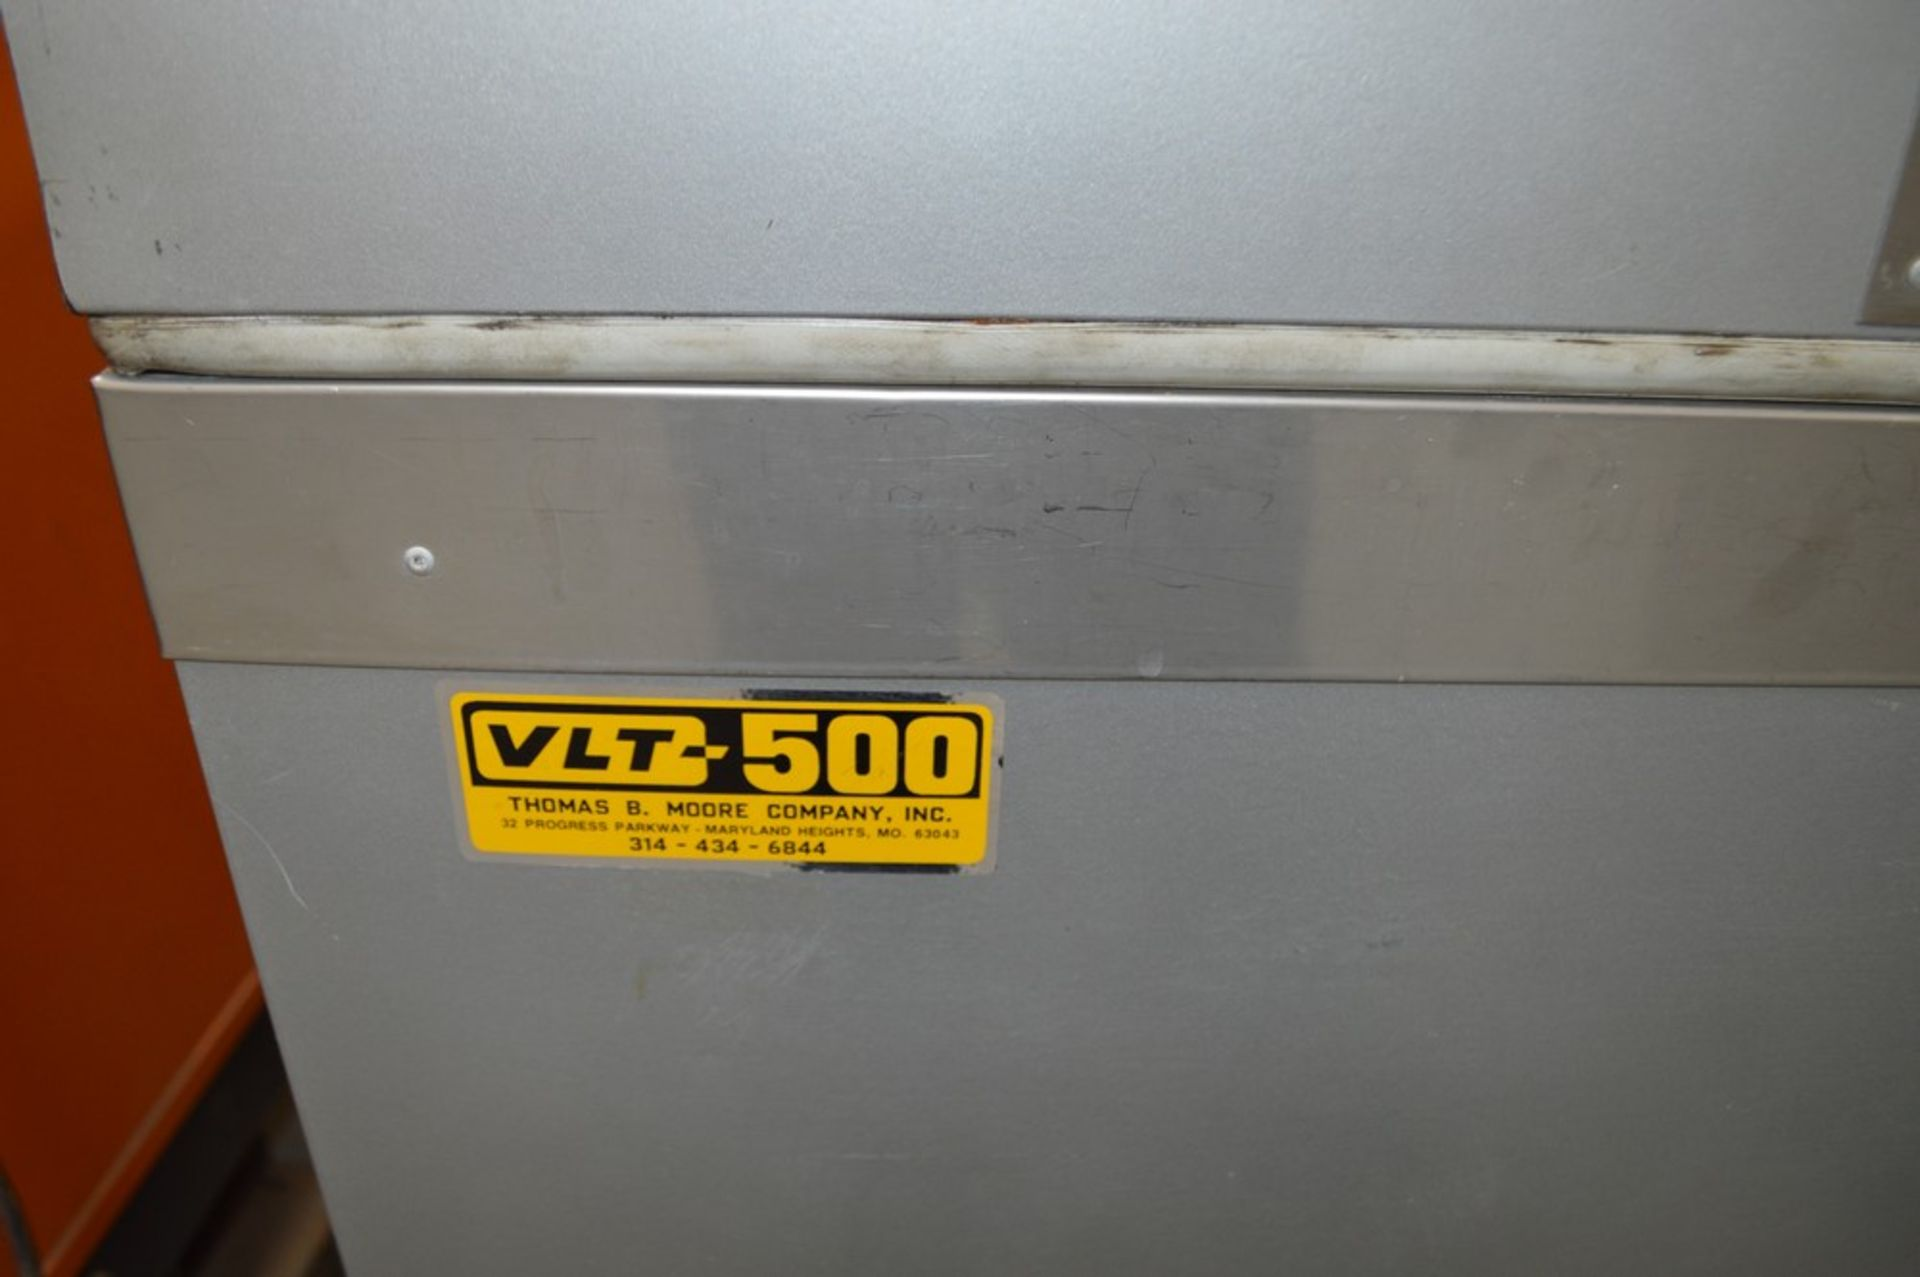 """VTL-500 Dry Ice Deep Freezer, internal tub 16 1/2 x 26 1/4"""" x 19 1/2"""" deep with extra metal jacketed - Image 3 of 5"""